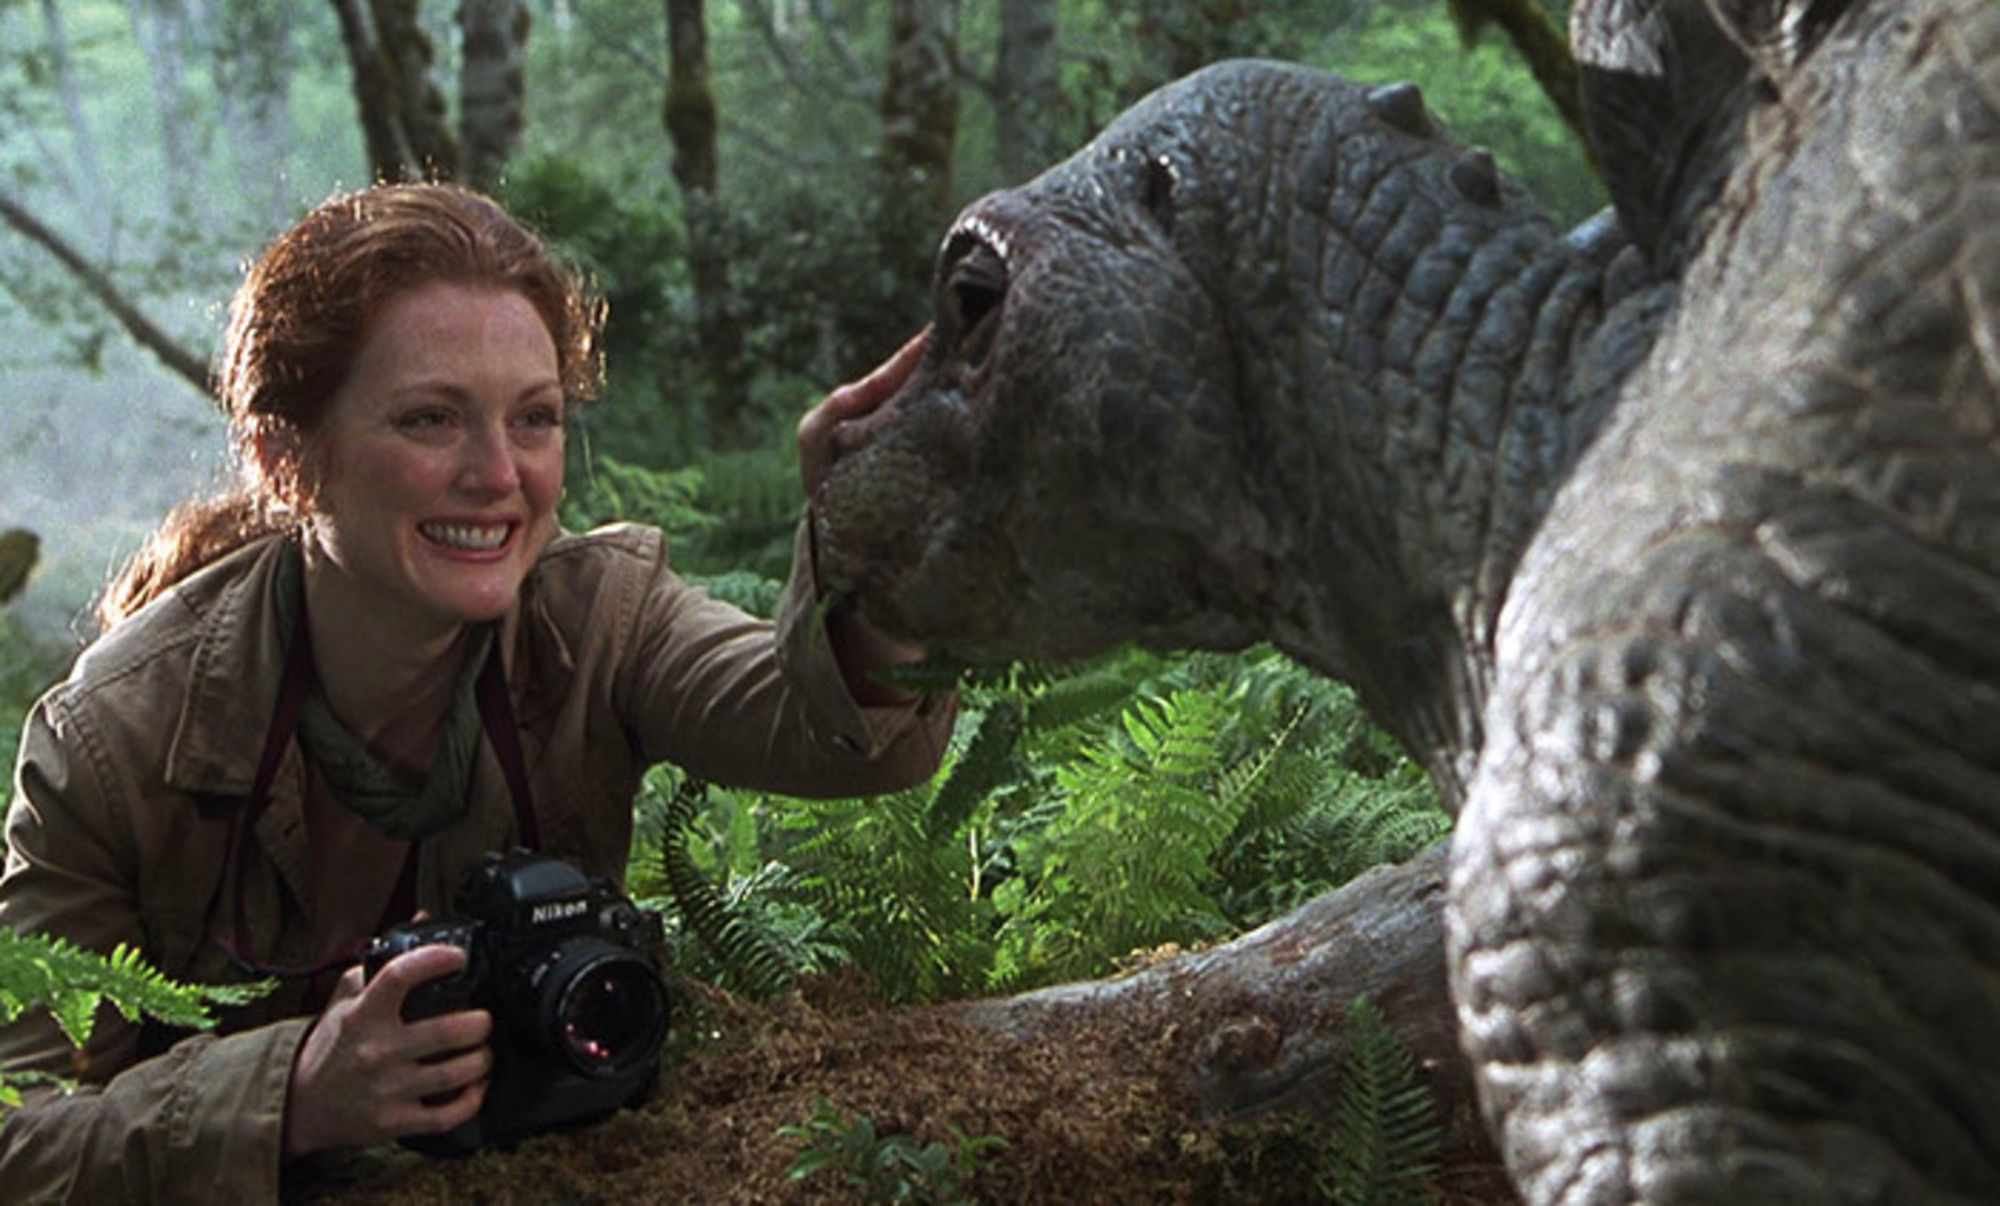 Dr. Sarah Harding from The Lost World: Jurassic Park petting a baby dinosaur